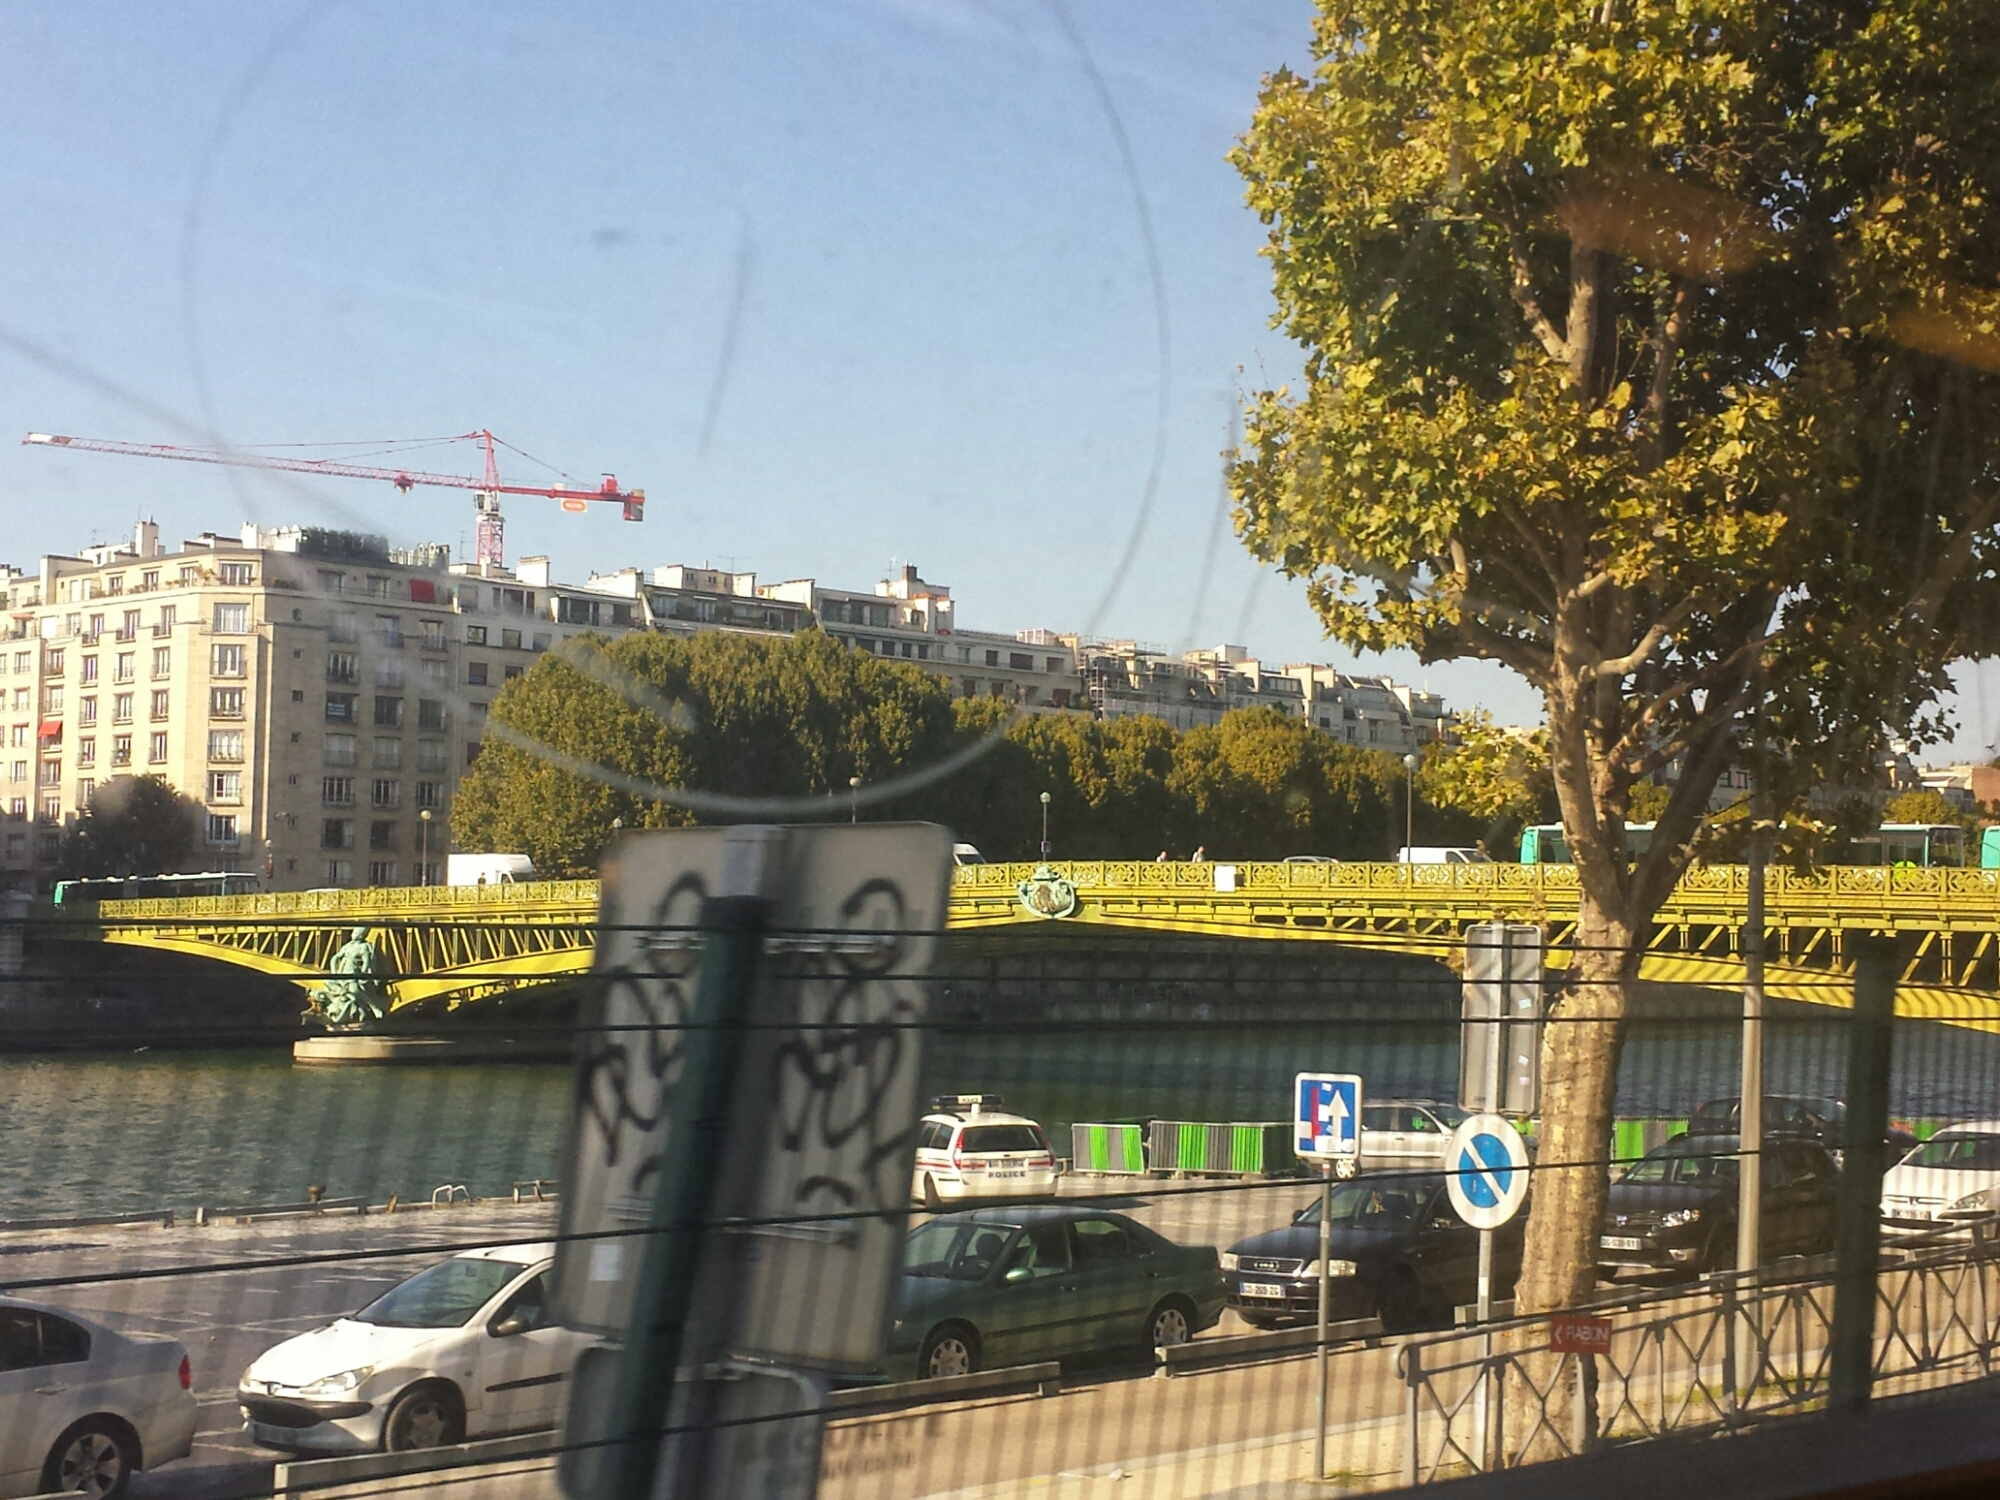 Traveling along the Seine by RER C train #Paris